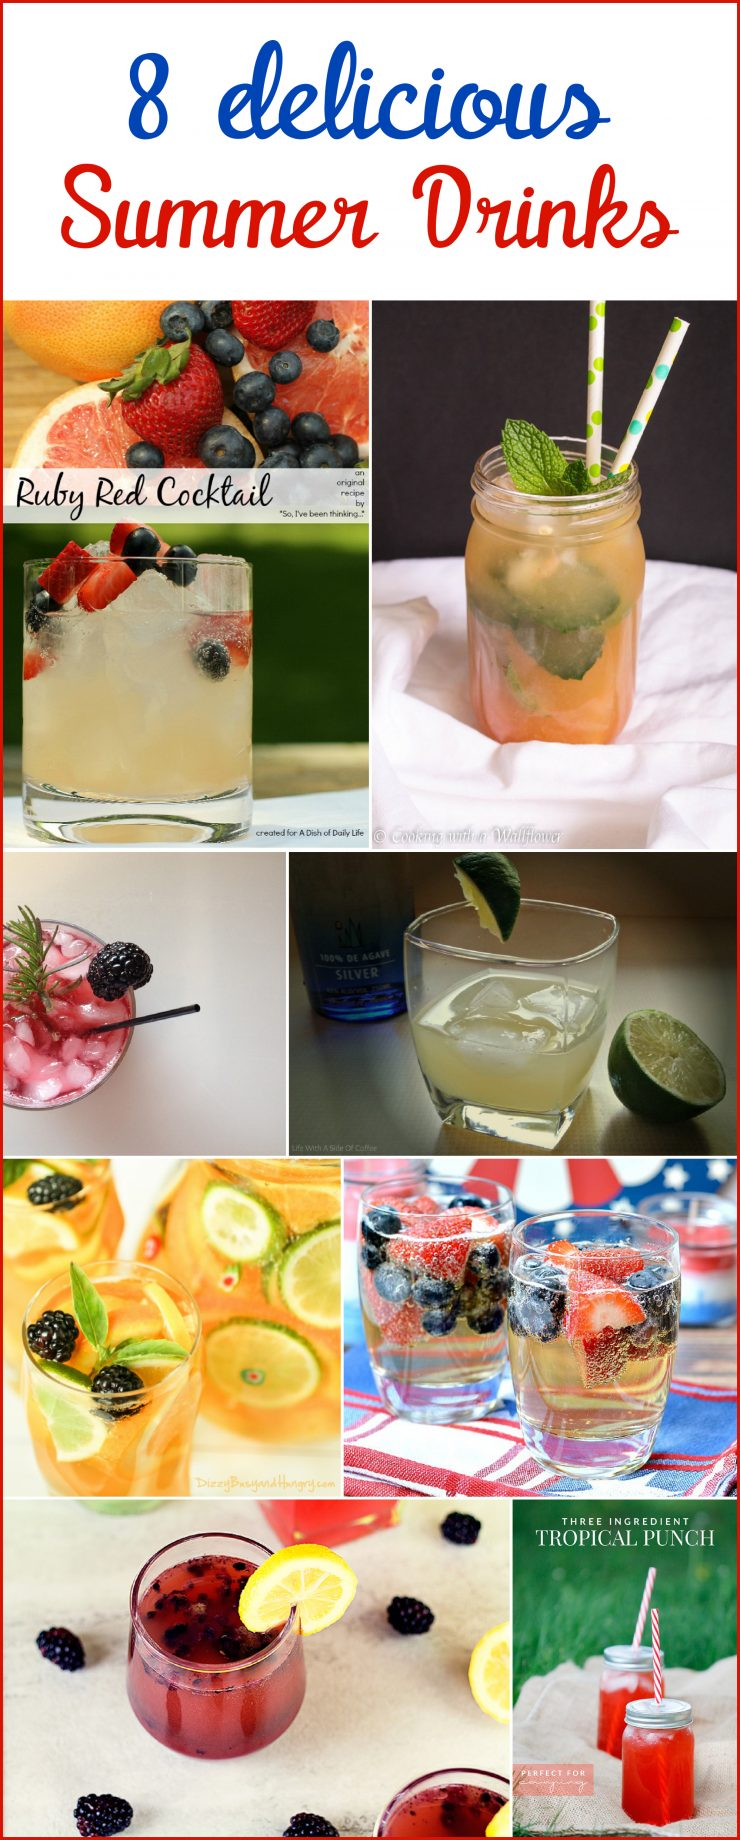 Delicious-Summer-Drinks